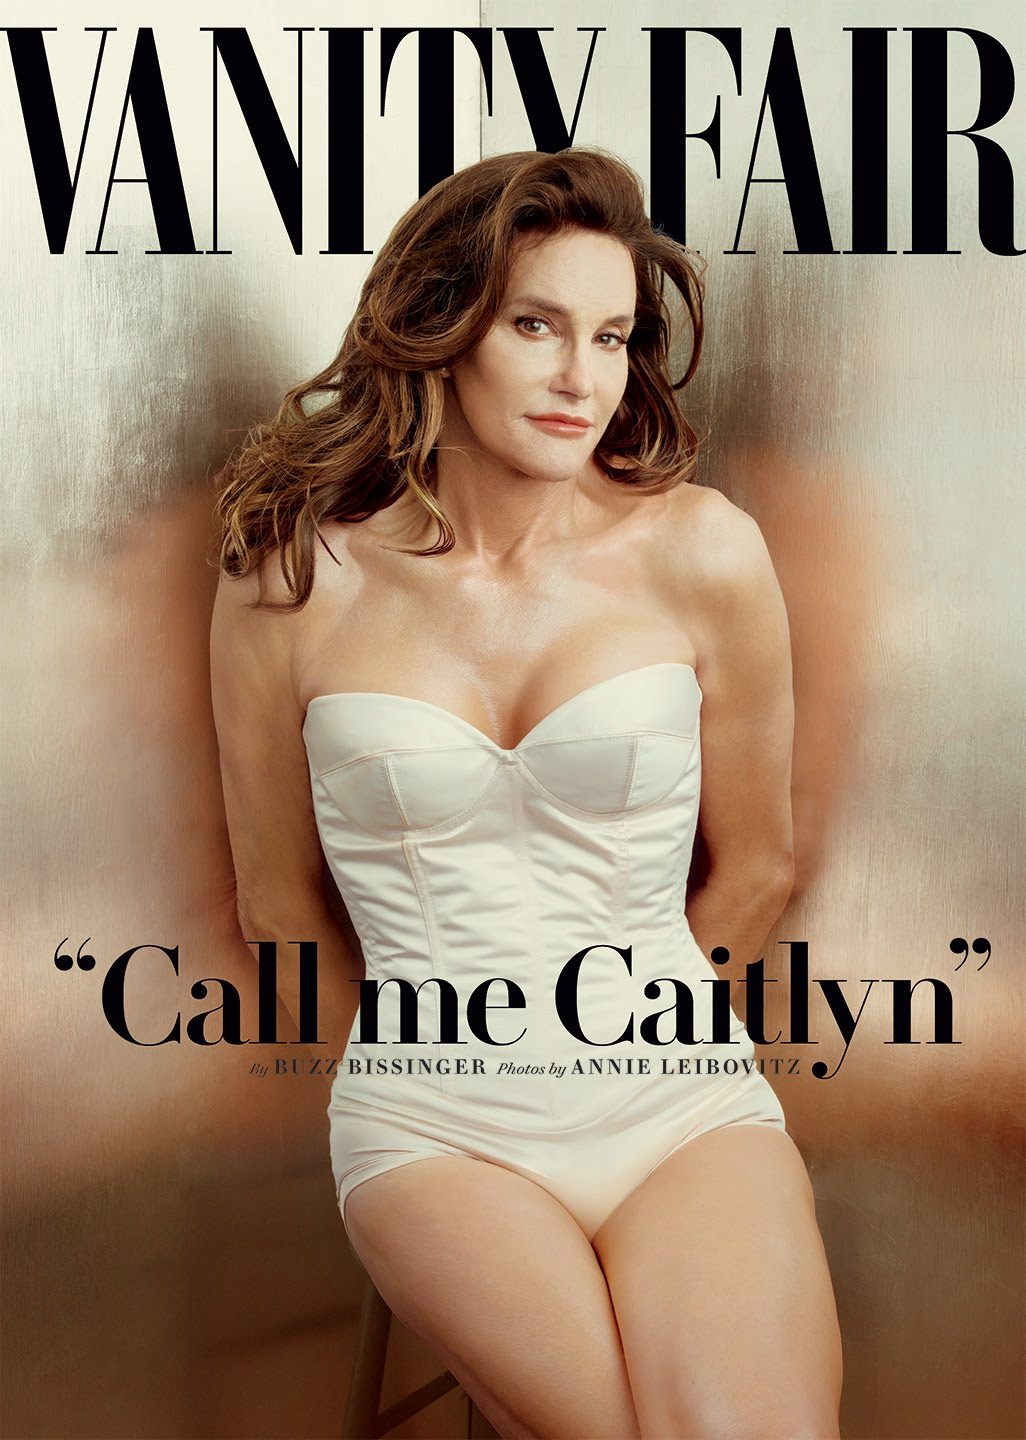 maxresdefault 2 2 Caitlyn Jenner Plans Most Daring Photoshoot Yet